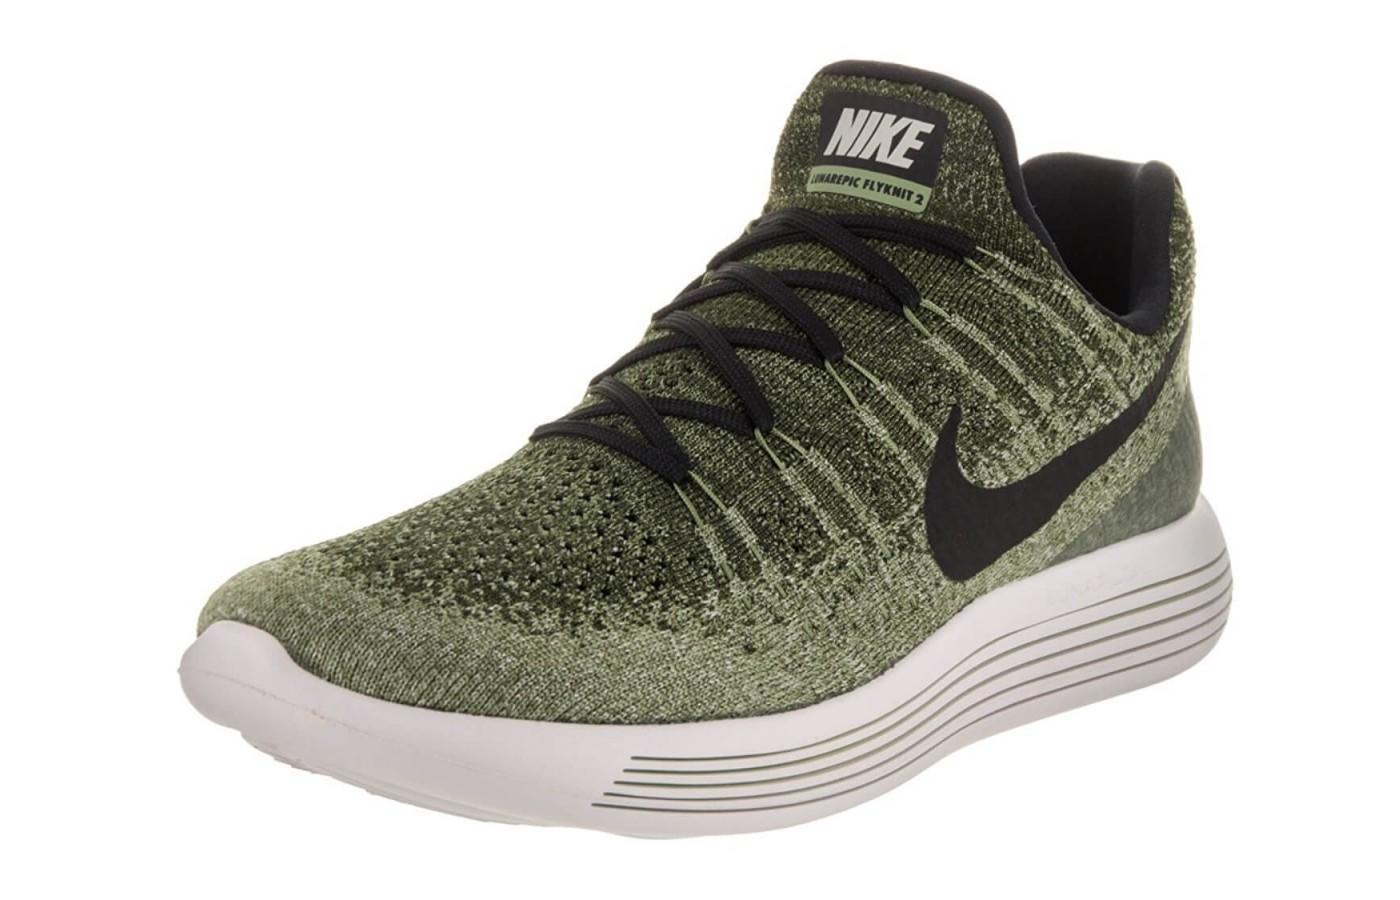 Nike LunarEpic Low Flyknit 2 - Buy or Not in Mar 2019  391c97ff5d70